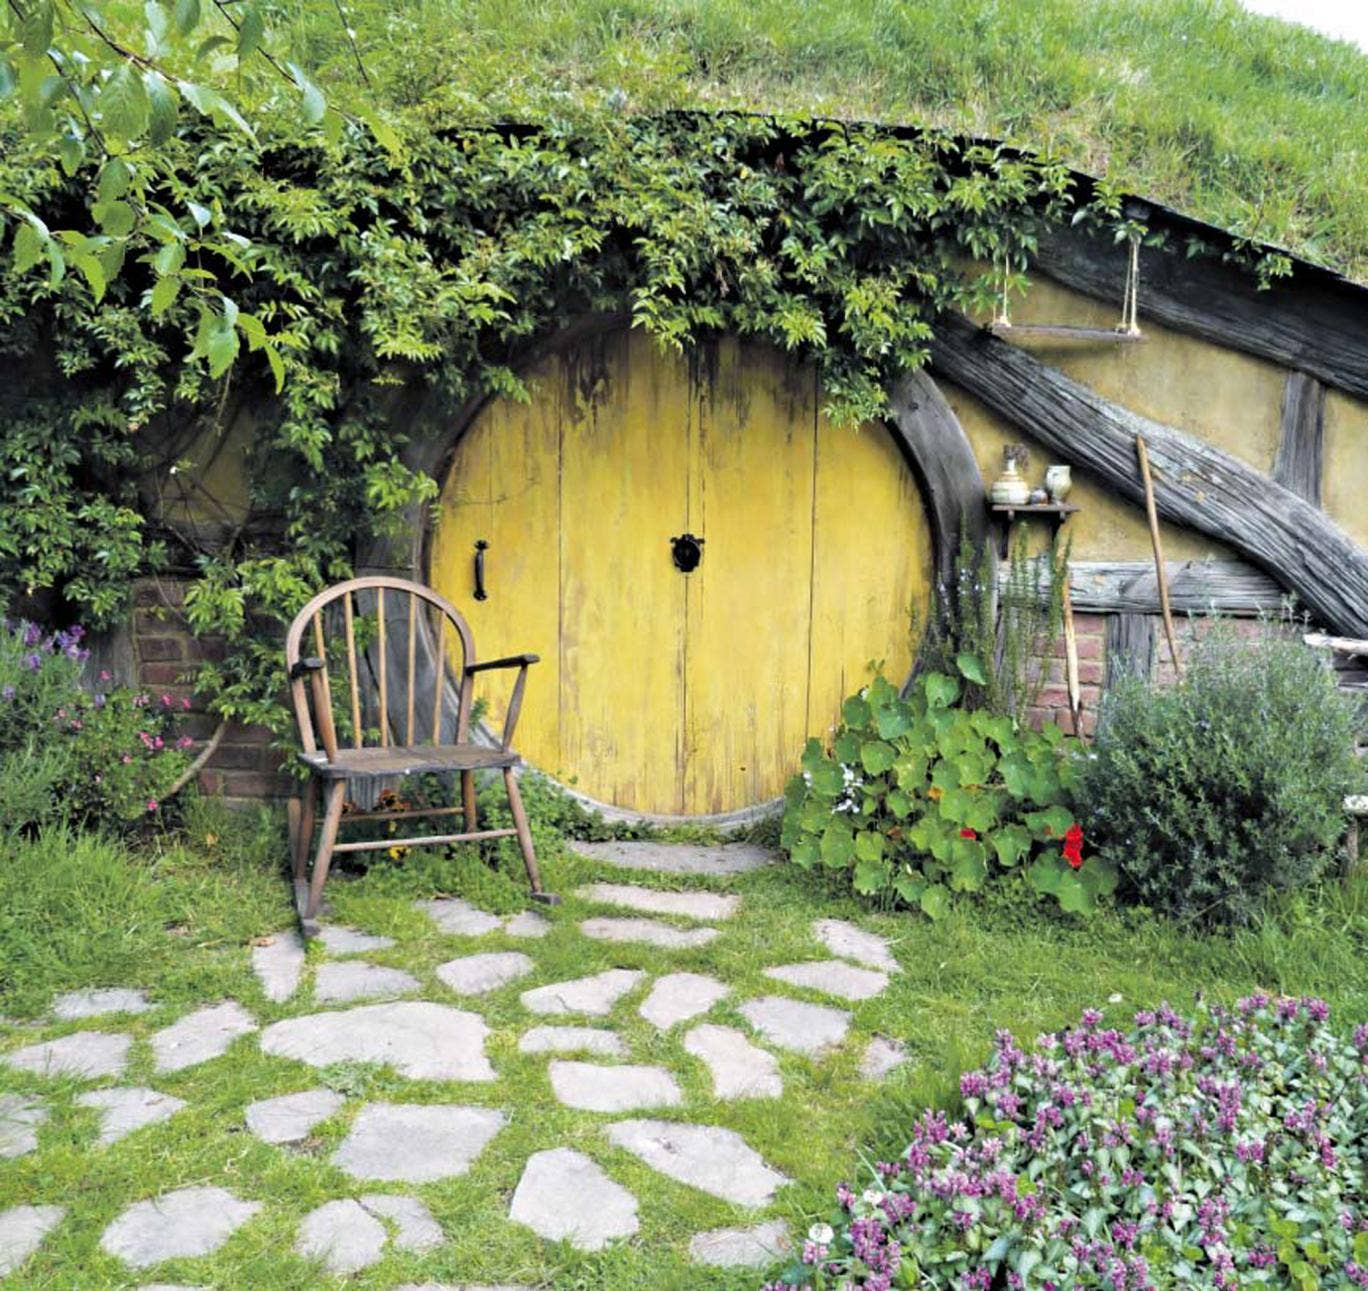 New Zealand is the setting for the film The Hobbit, and will come back into focus in 2013